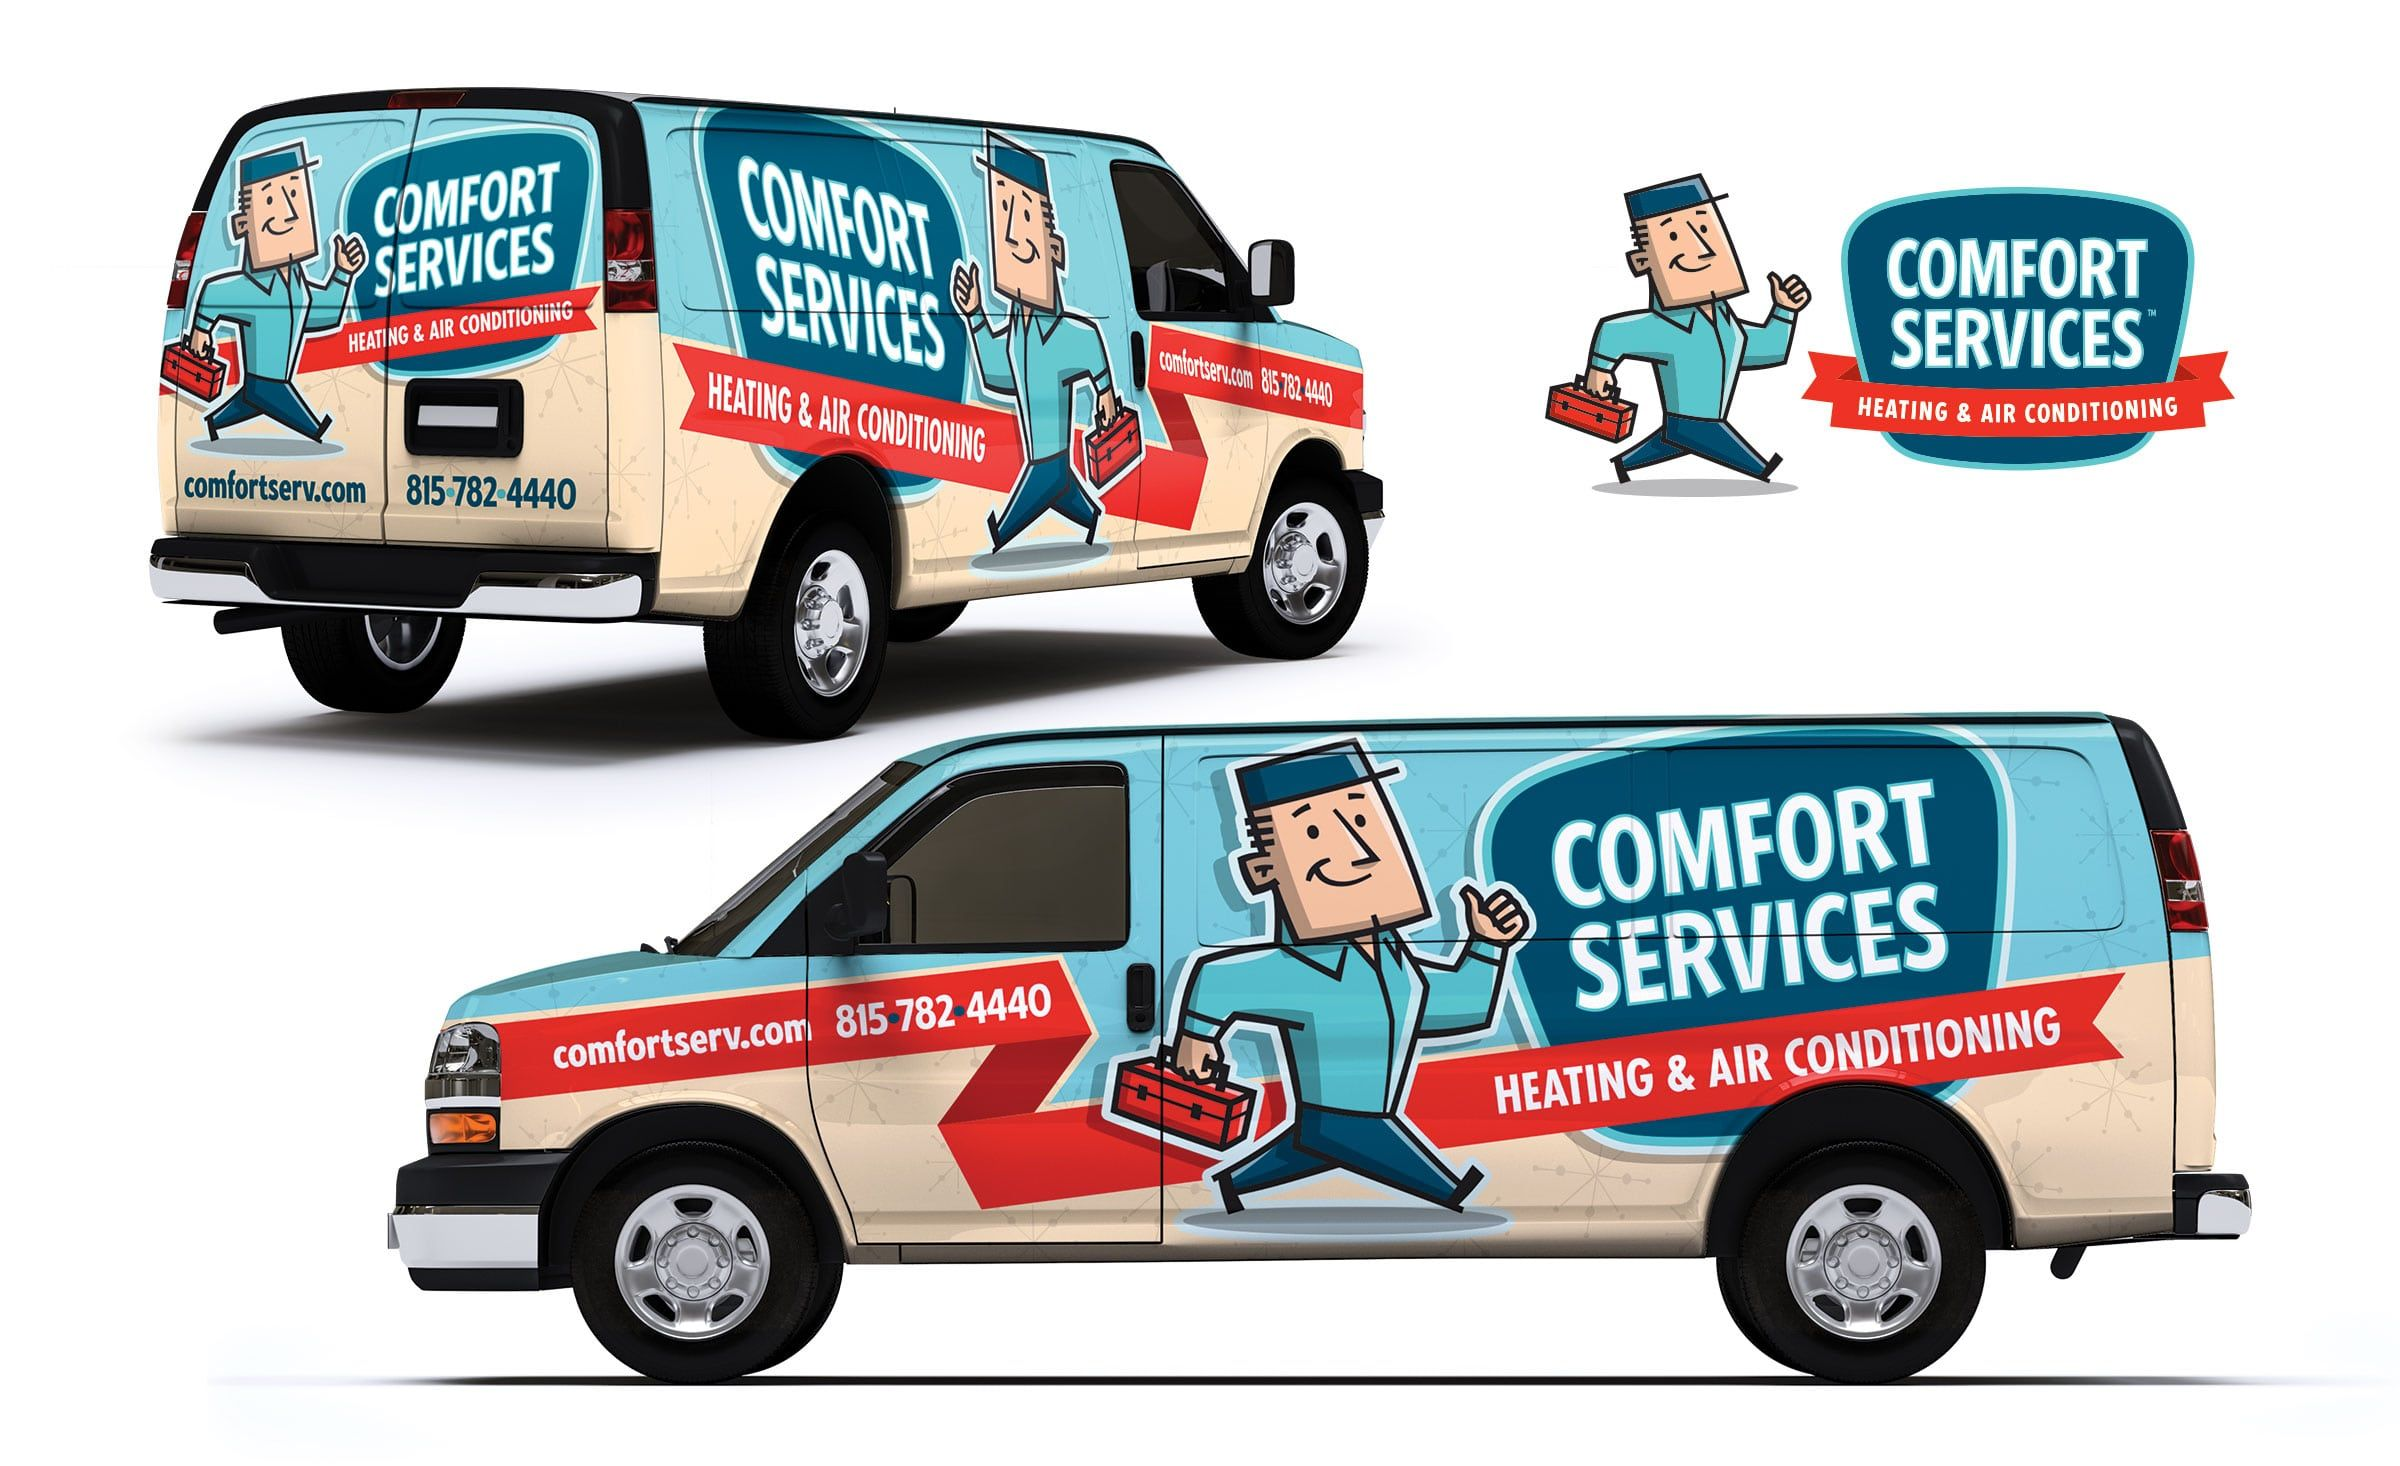 Comfort Services Heating Air Conditioning Kickcharge Creative